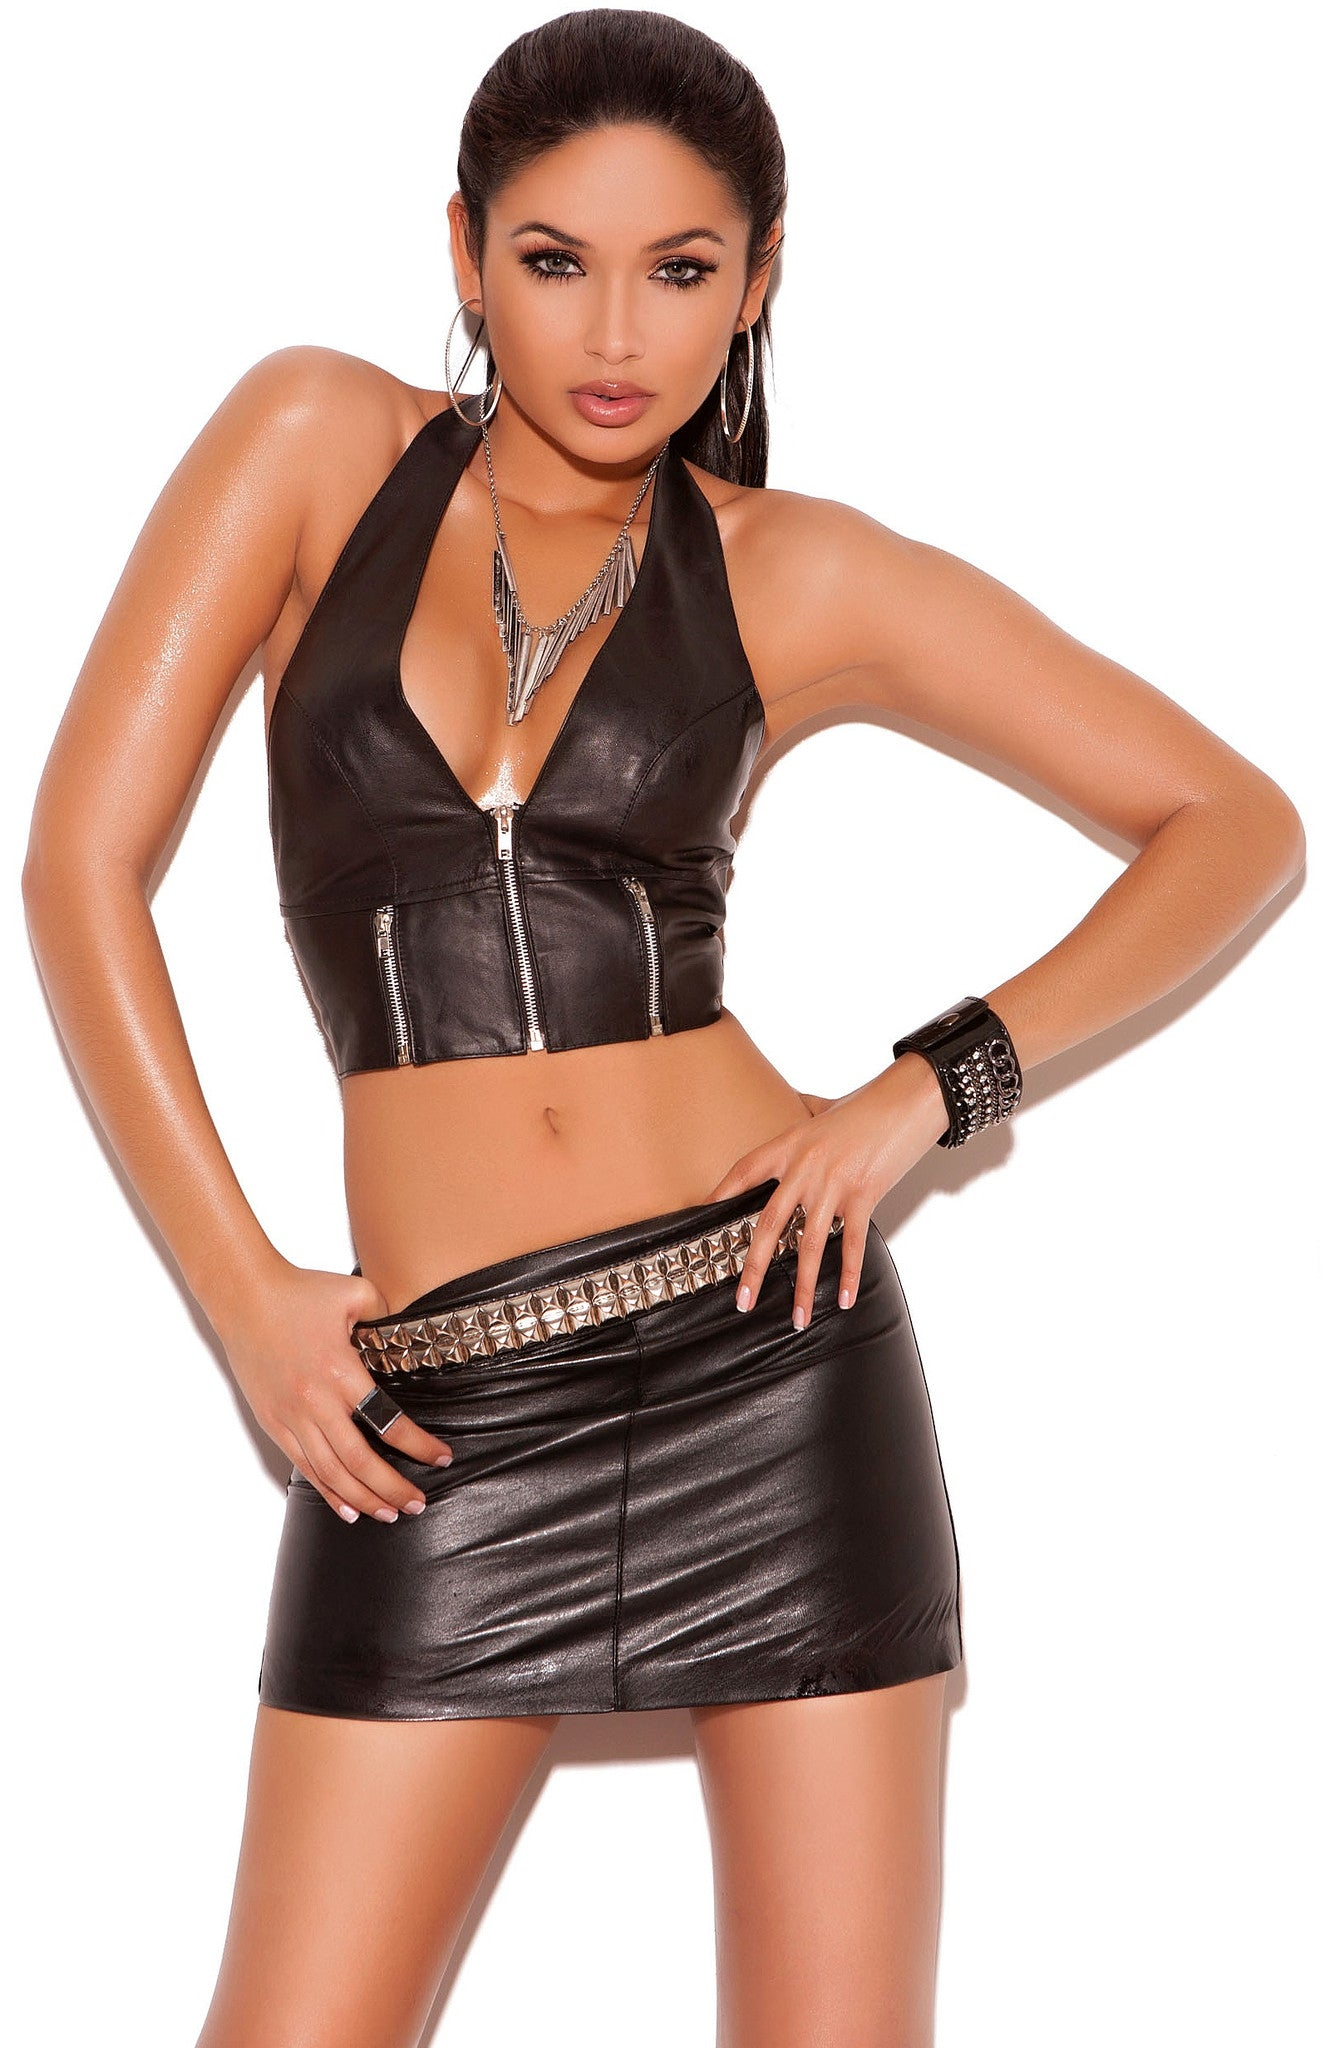 L6102 Leather mini skirt - Sexylingerieland